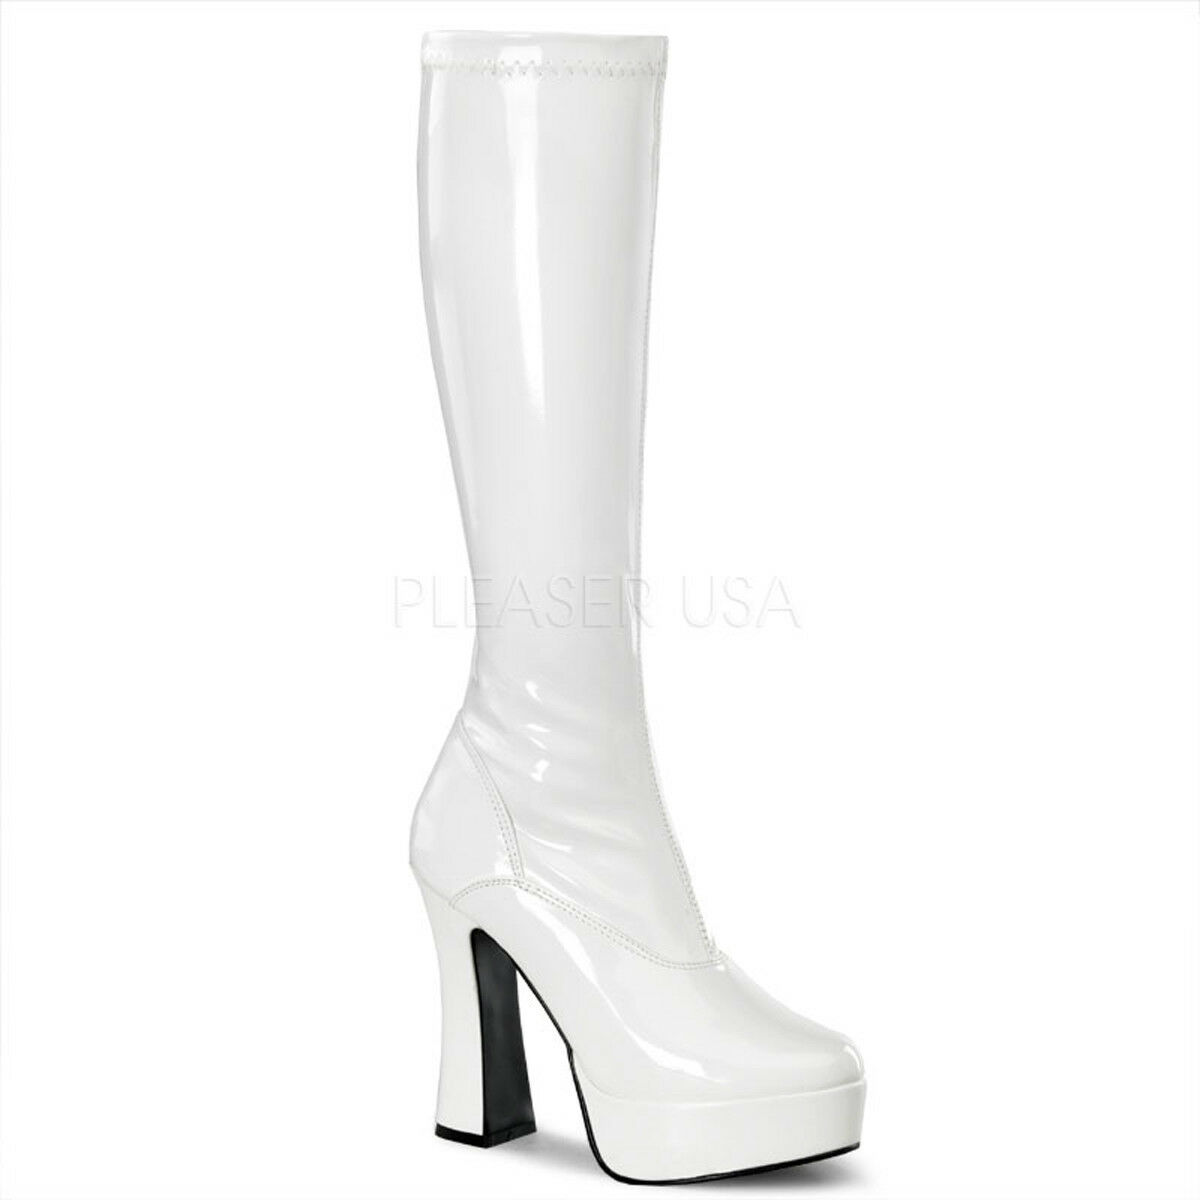 Pleaser ELECTRA-2000Z Platforms Exotic Dancing White Patent Mid Calf Boots